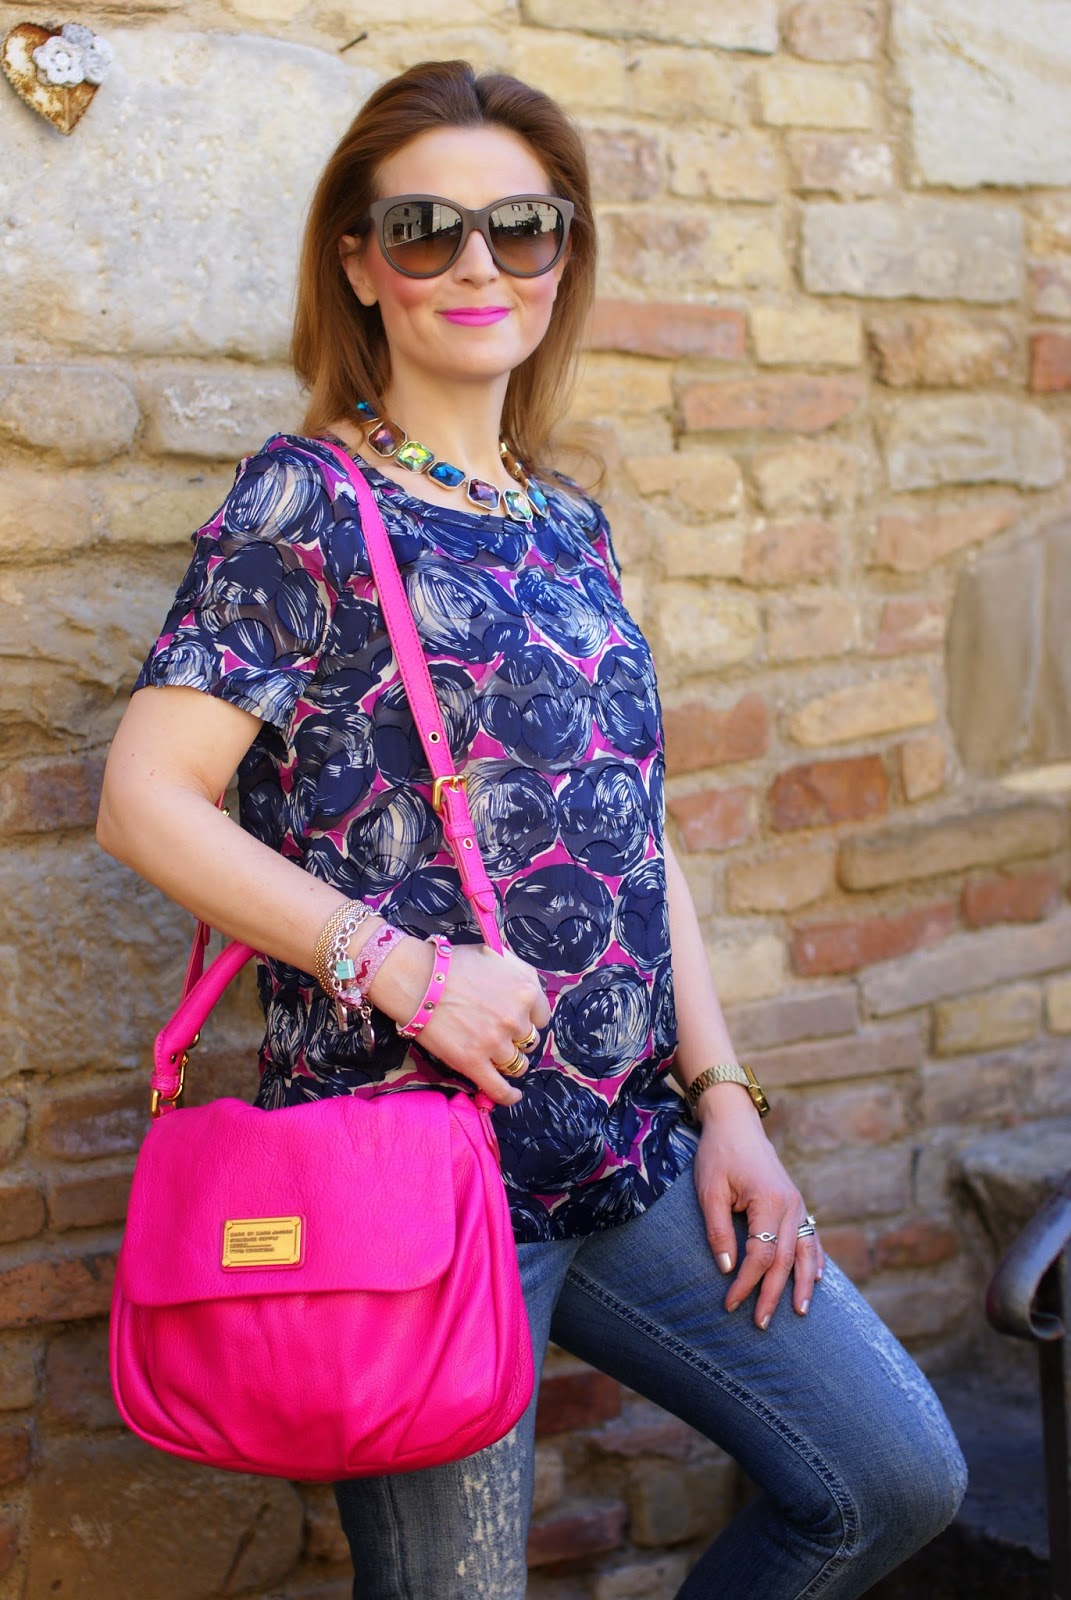 MAC Candy Yum Yum lipstick, Tory Burch blouse, Fashion and Cookies fashion blog, fashion blogger with supercolor